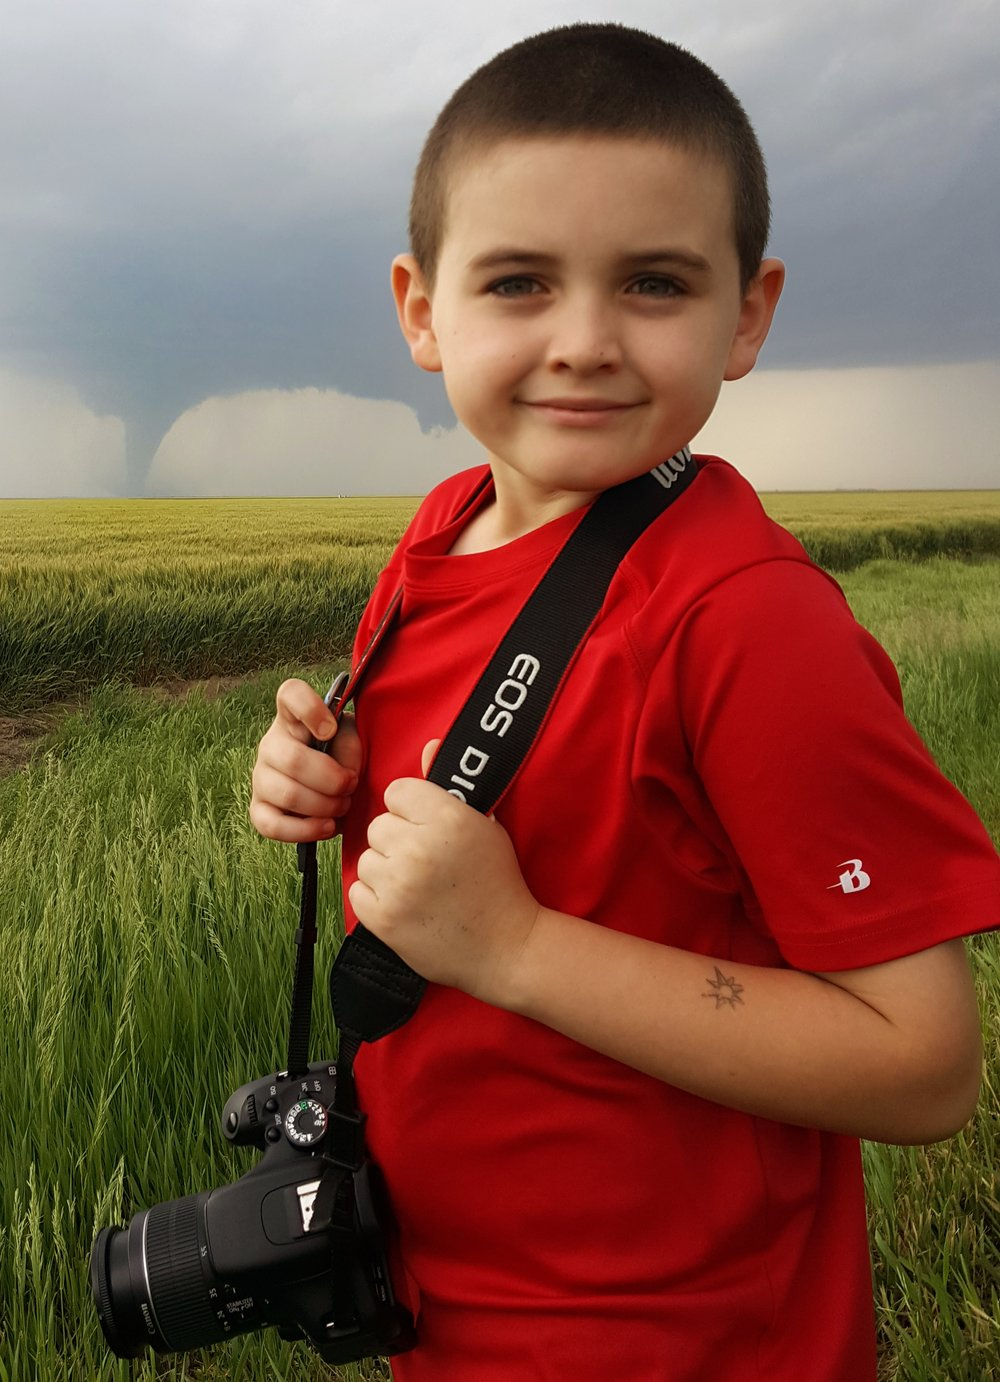 Chase witnessed several tornadoes as a cyclic supercell moved through Kansas on May 24, 2016.  Image by Savannah Weingart